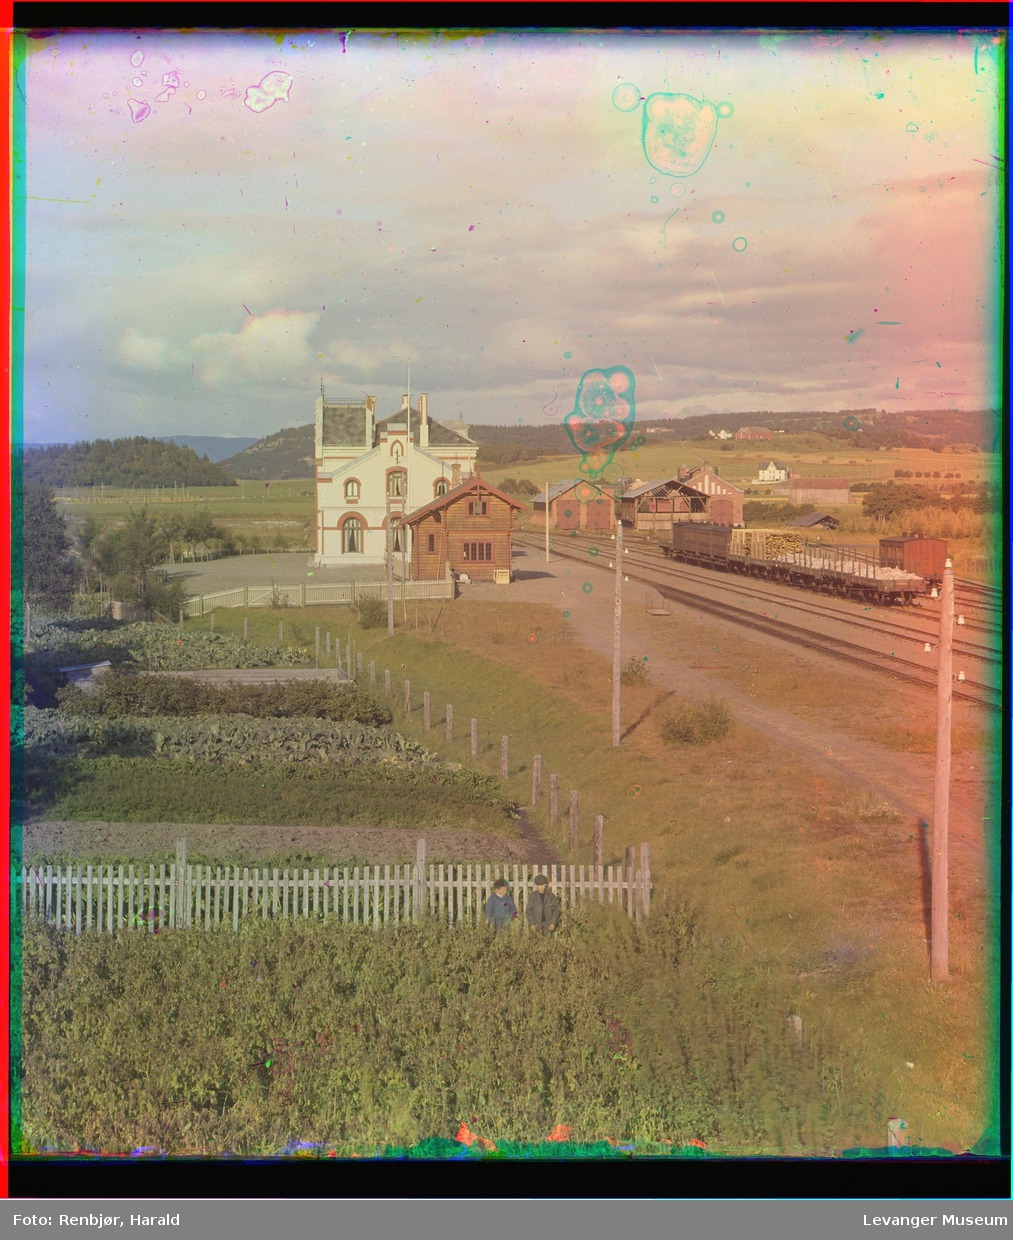 20th century in color.Colors of the world as it was 110 years ago! LARGE, Prokudin Gorsky, pictures, Prokudin Gorsky, almost made, which, color, color, several, city, photographer, time, Russian, who, Emir, color, Bukhara, Samarkand, modern